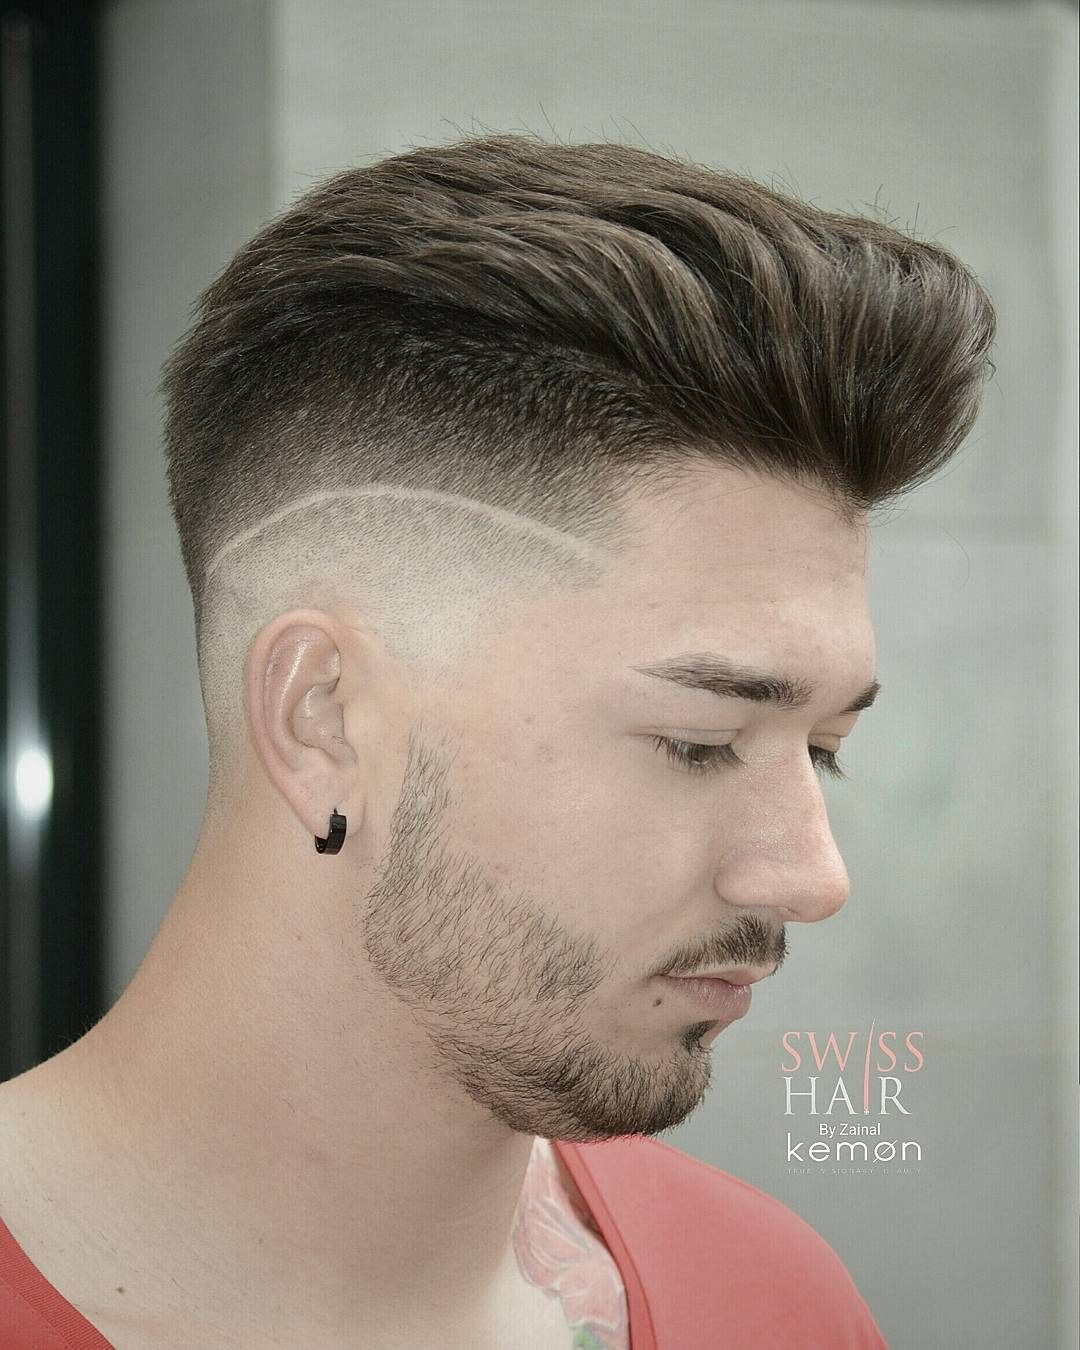 best images about corte de pelo on pinterest